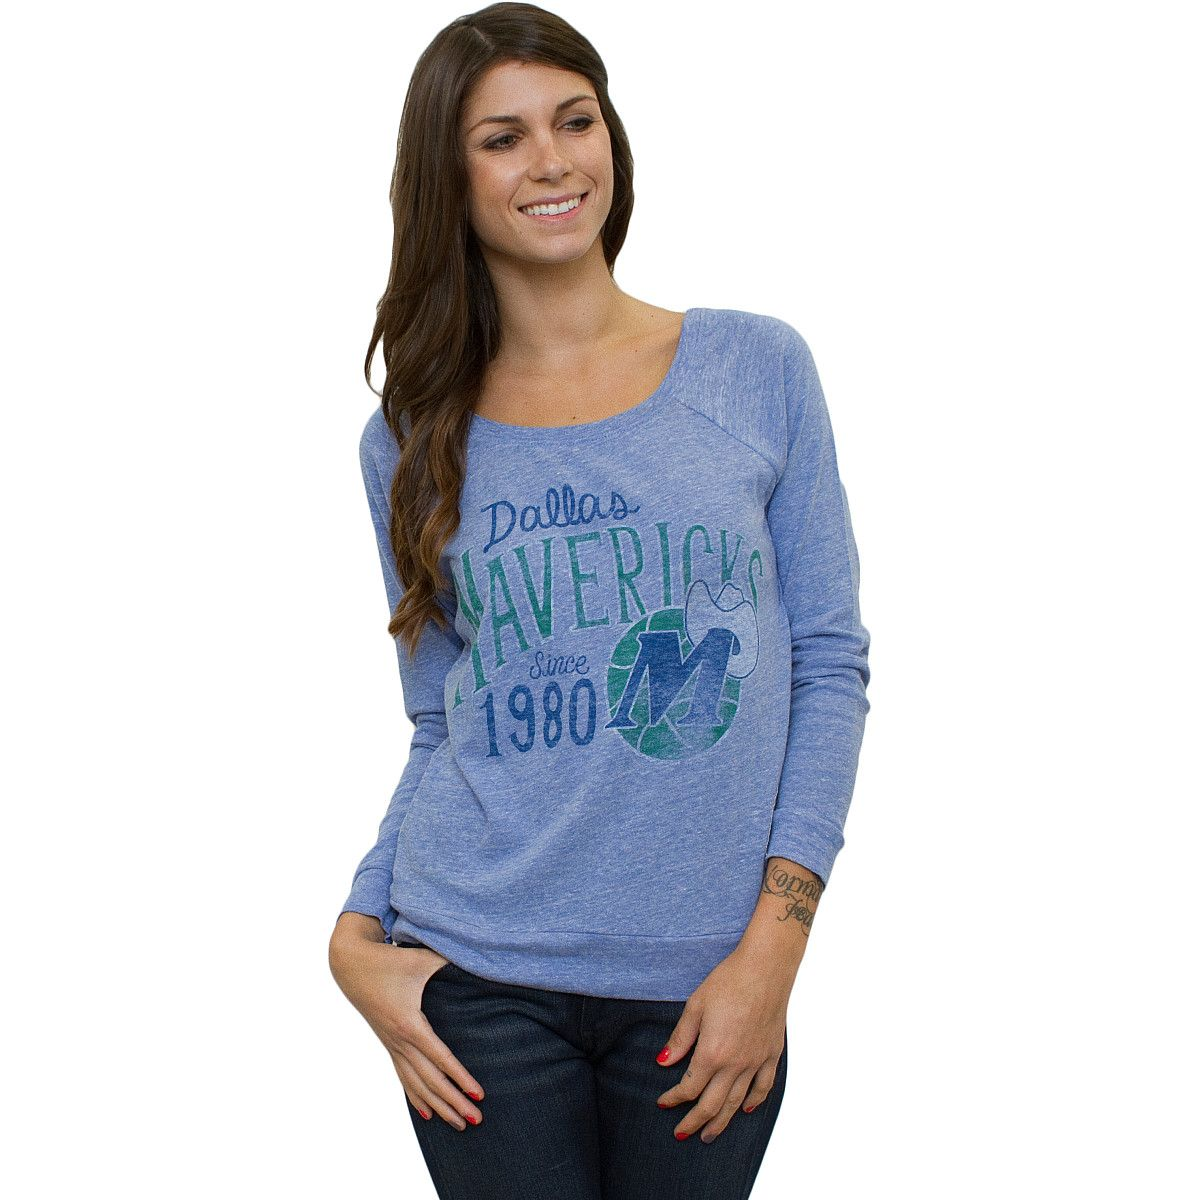 c685fe3e0dda Junk Food Dallas Mavericks Womens Triblend Long Sleeve T-Shirt -  NBAStore.com~ for Les